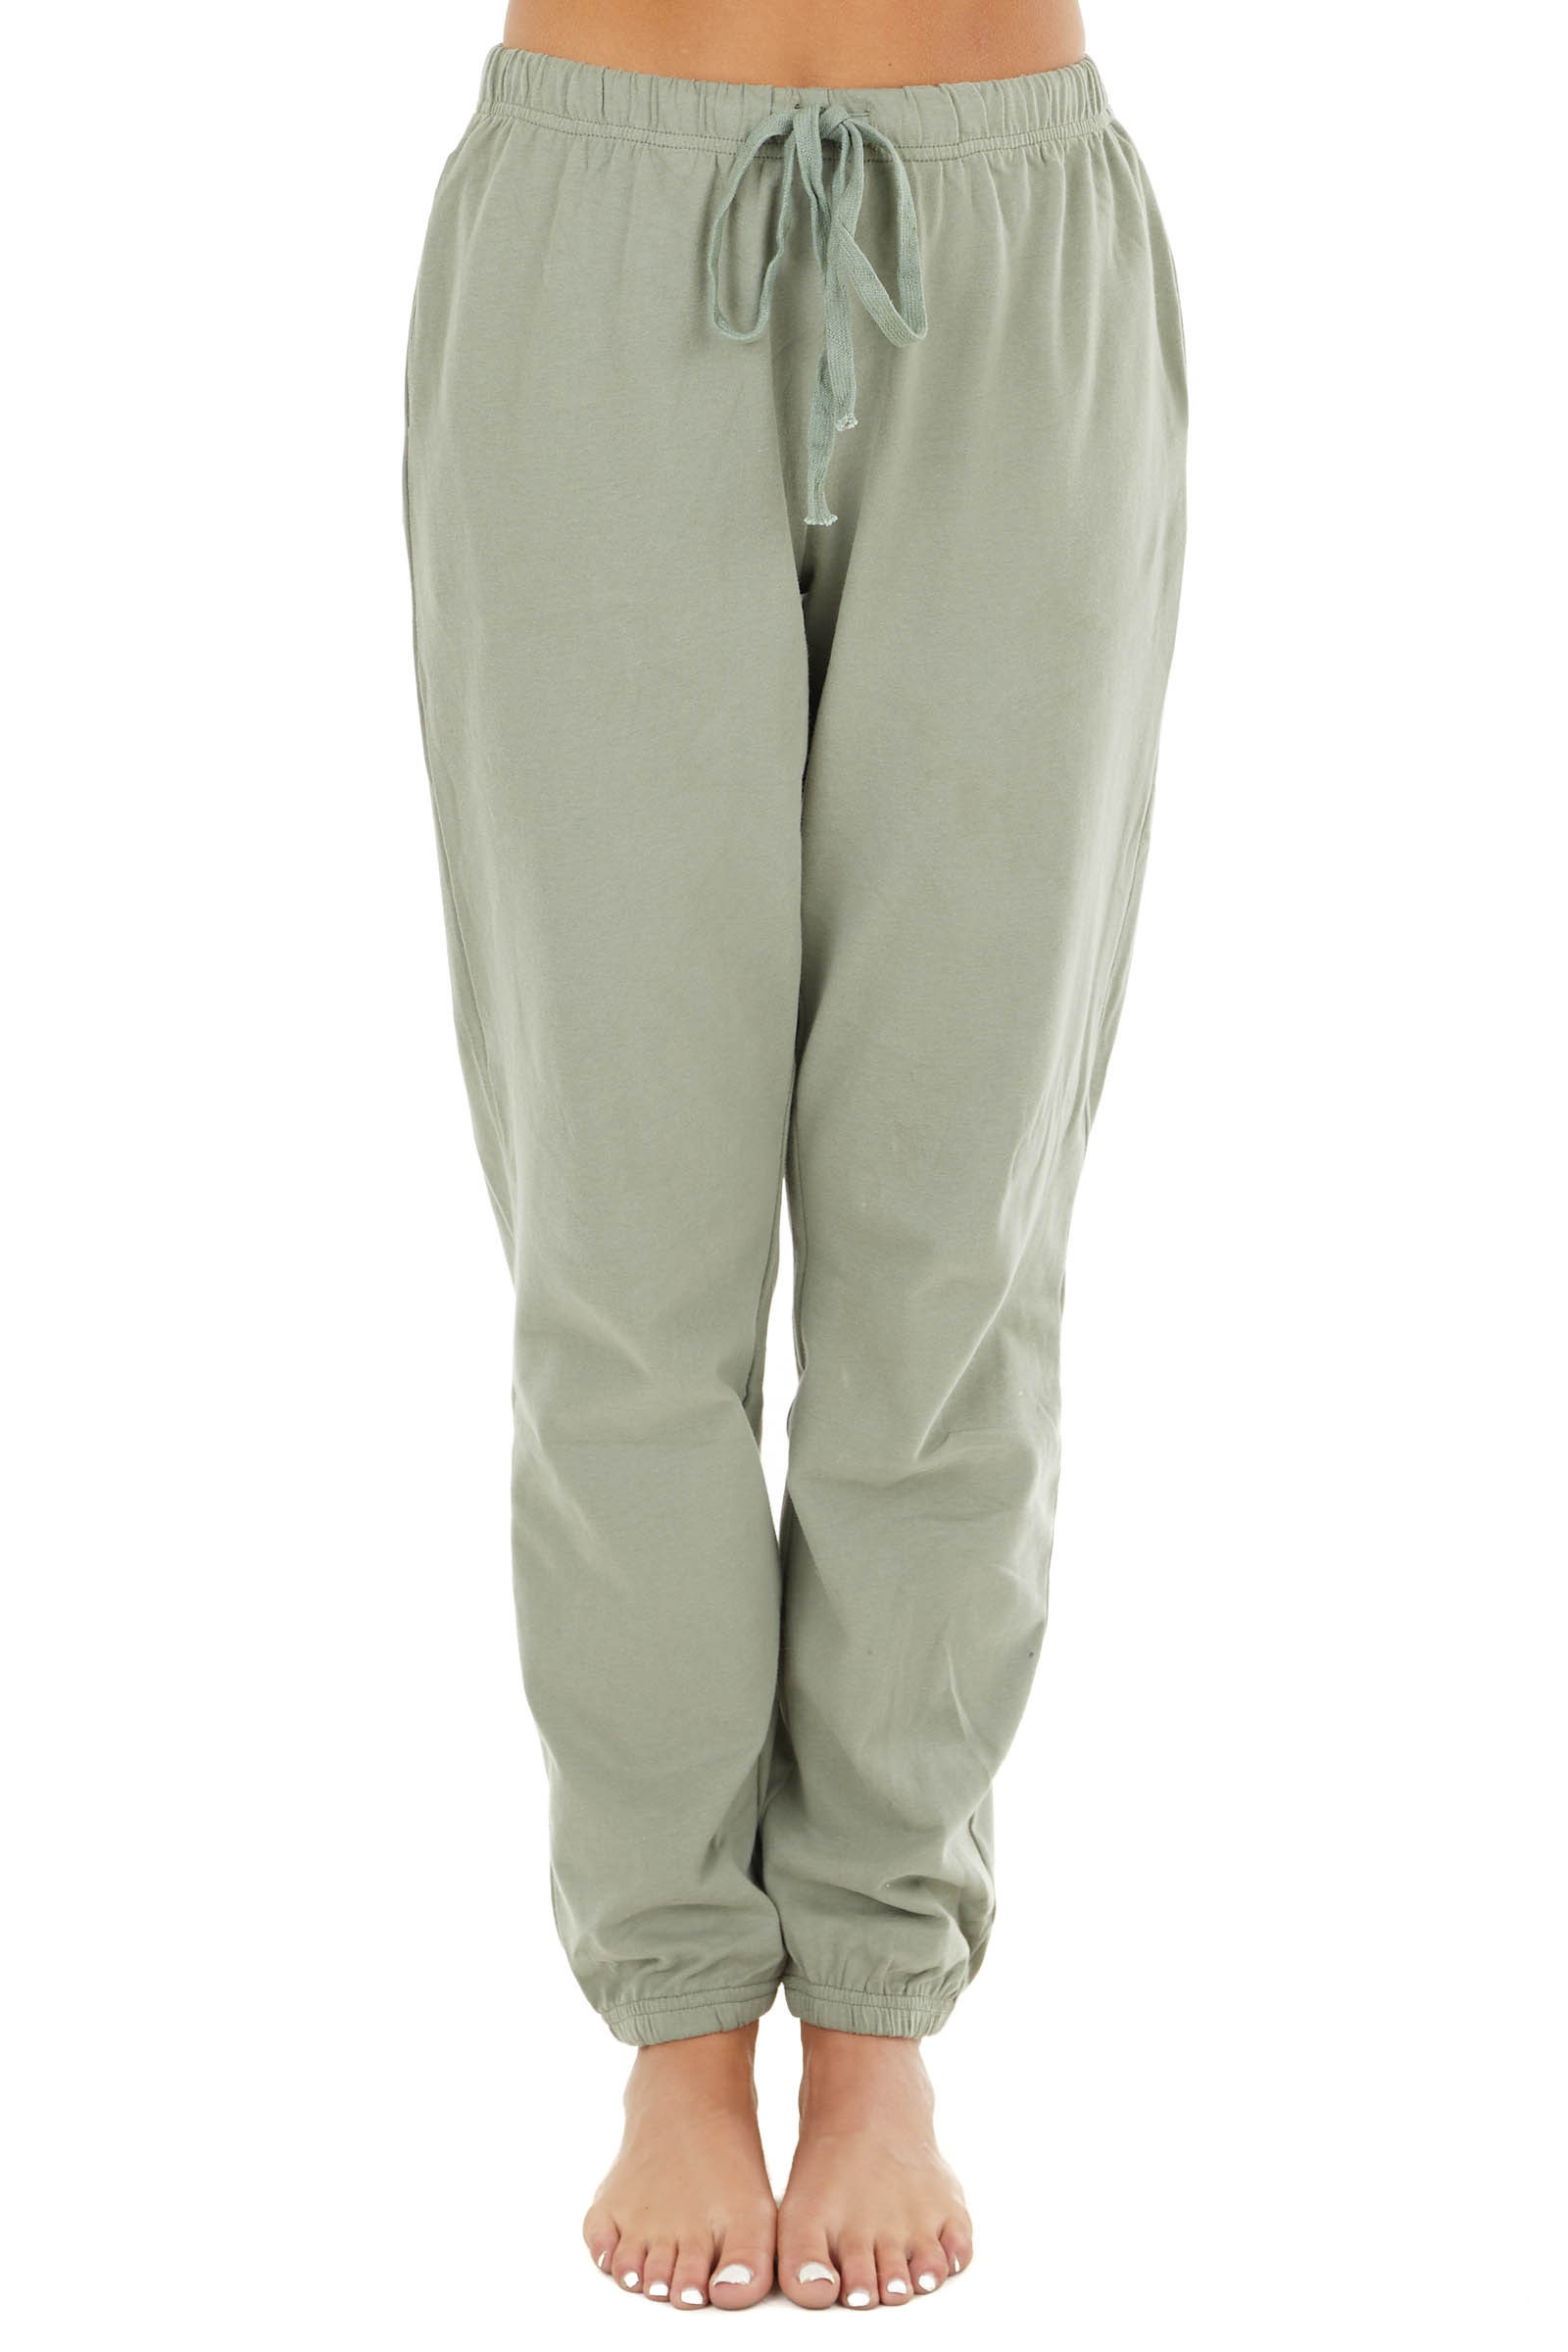 Sage Soft Knit Joggers with Elastic Waist and Pockets